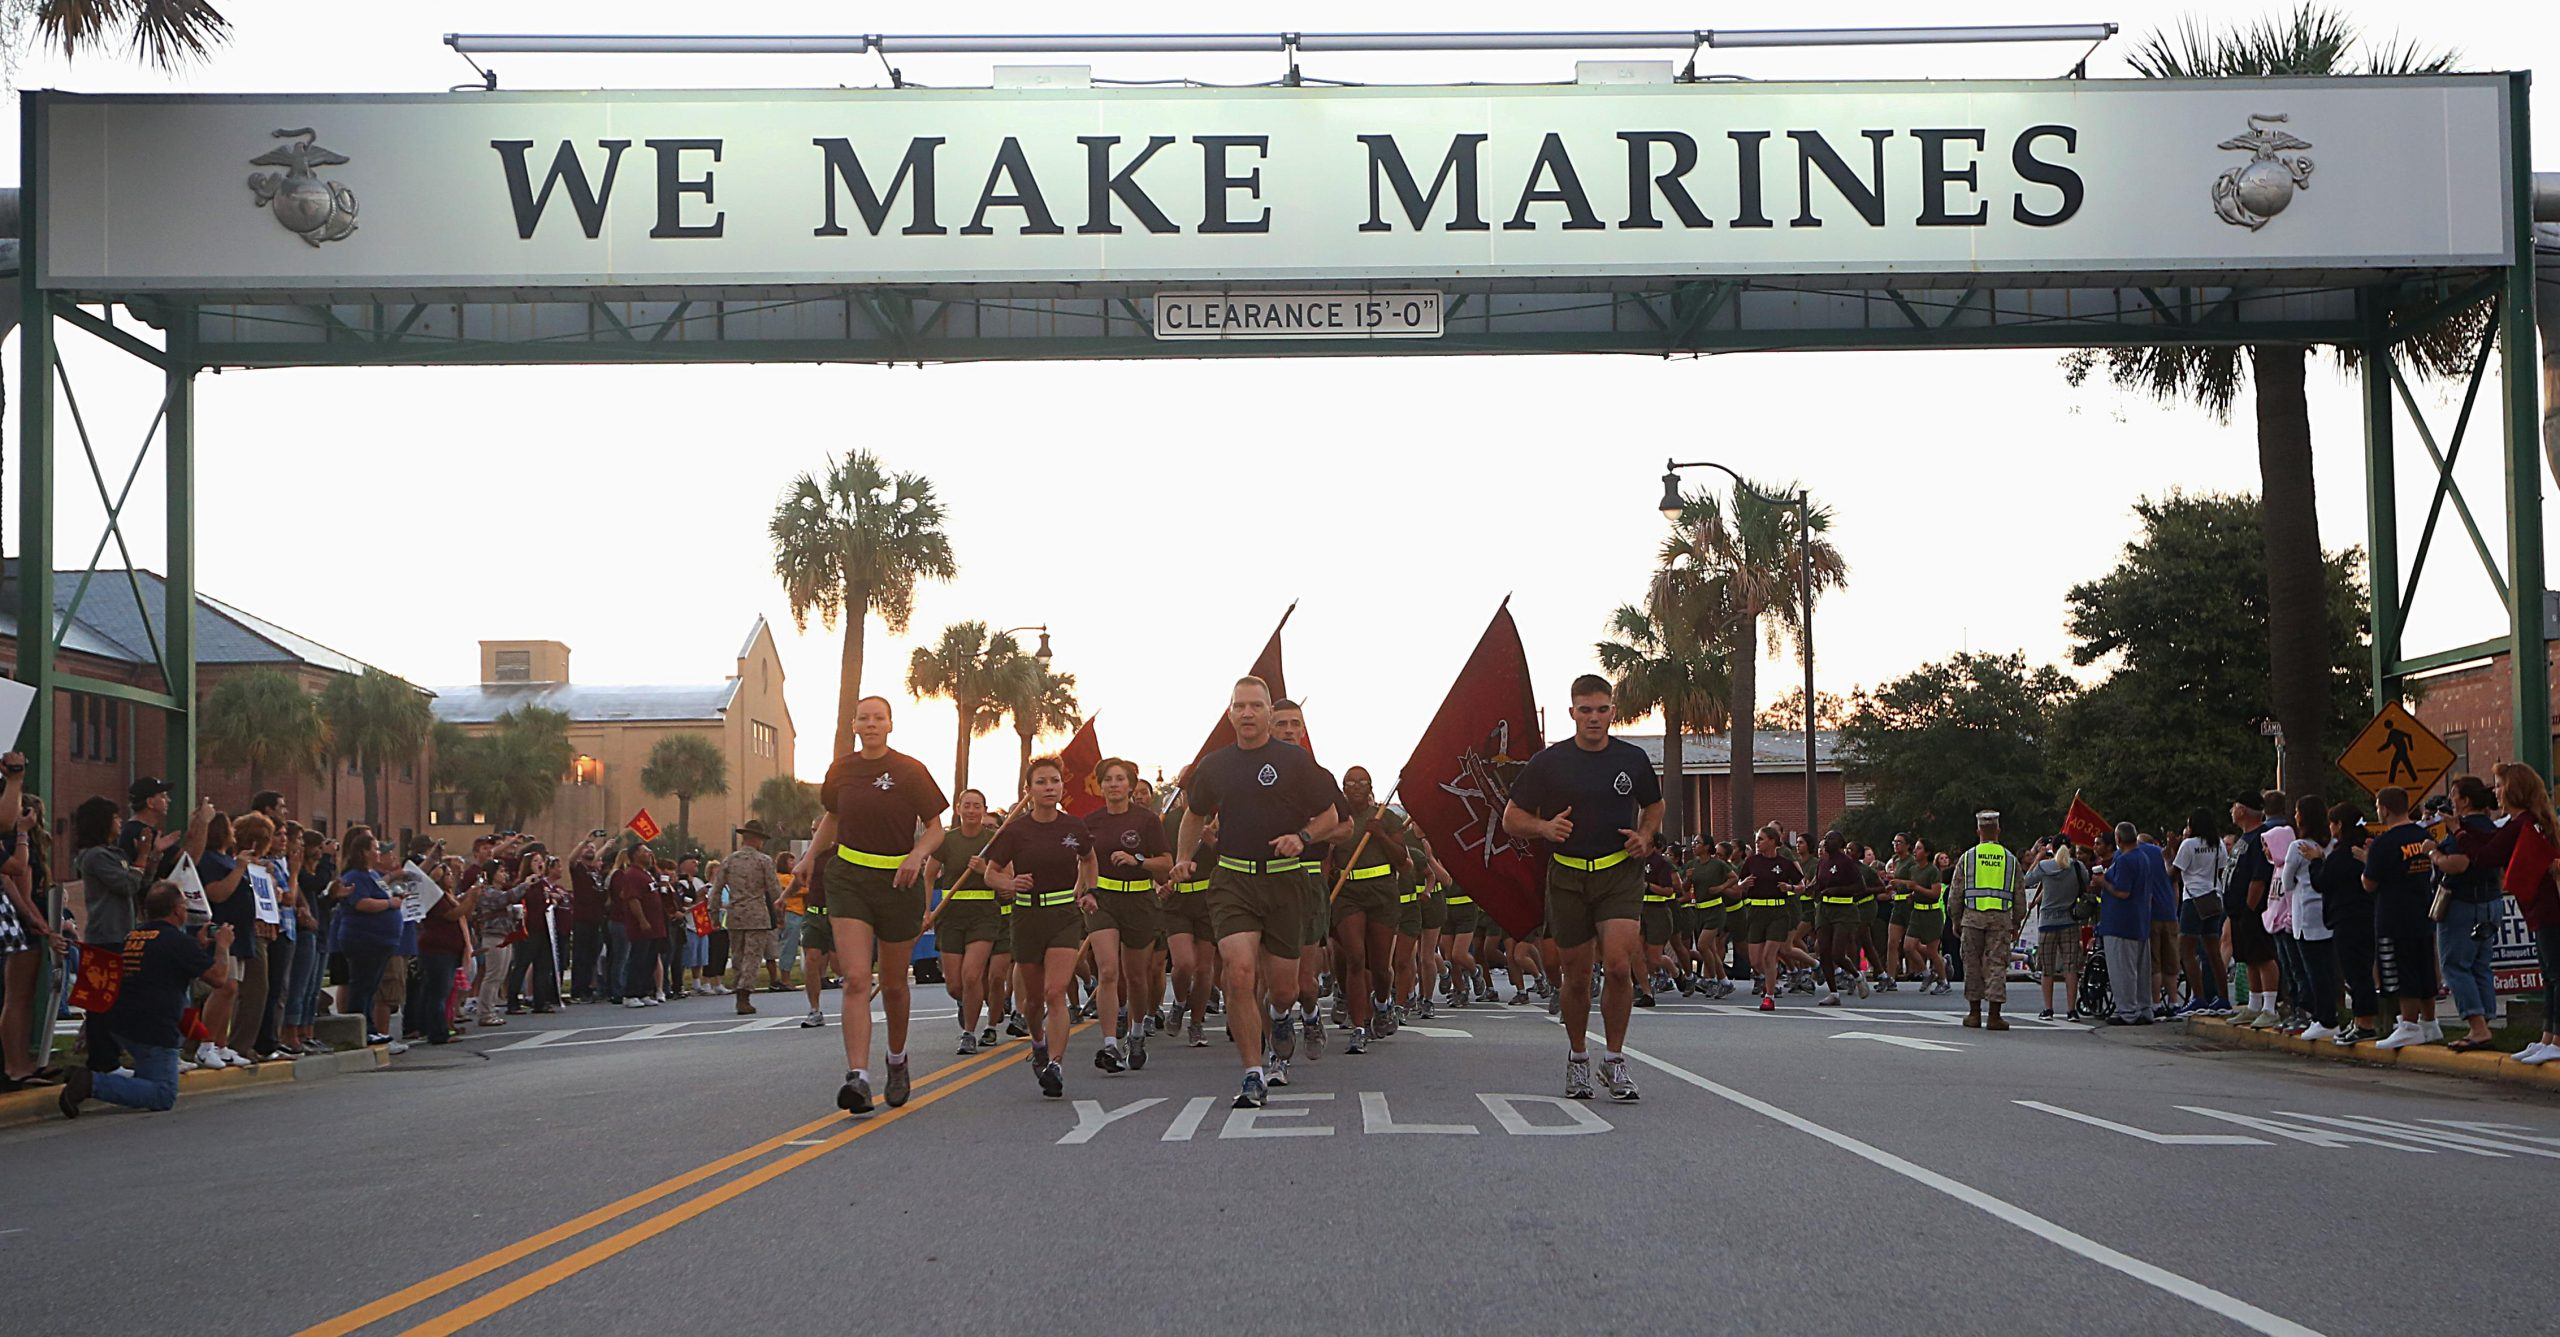 MCRD Parris Island is one of two Marine Corps Recruit Depots where Marine Corps recruits undergo basic training.